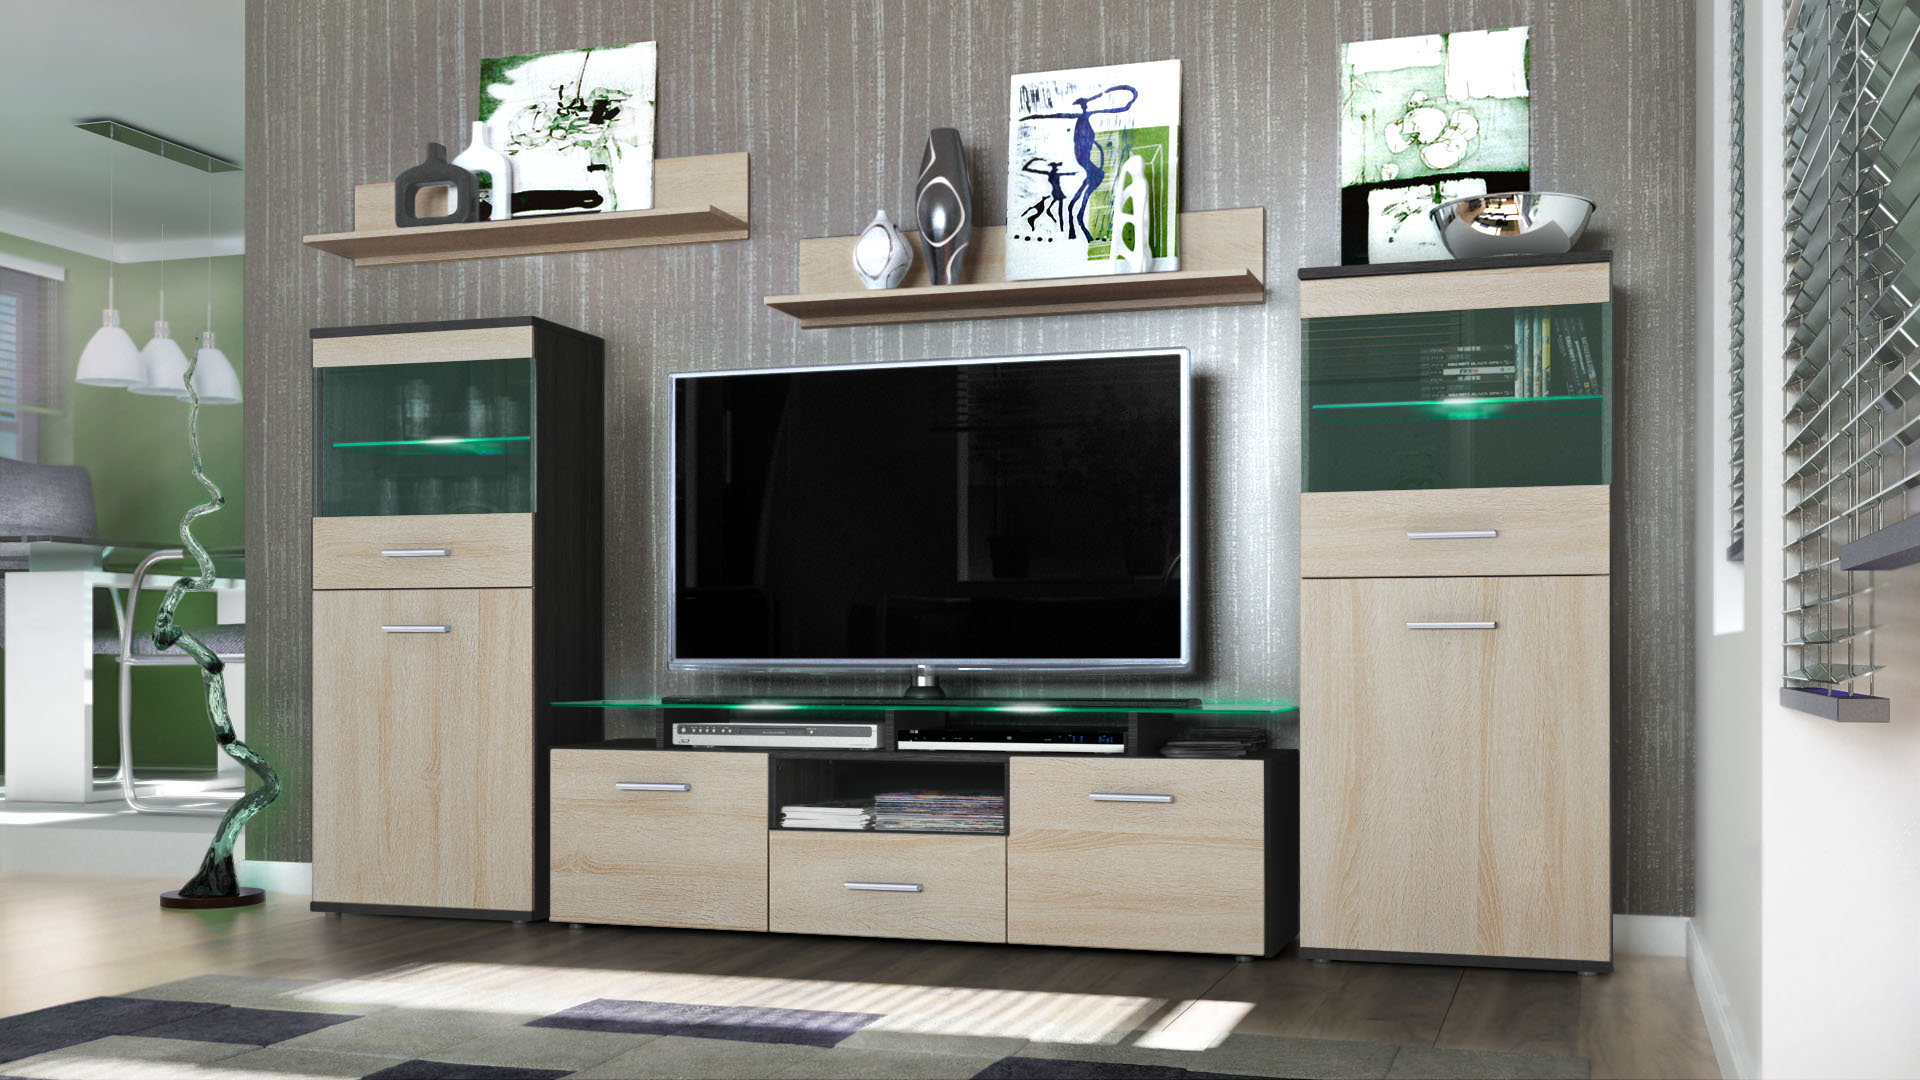 Wall unit living room furniture almada black high gloss - High gloss living room furniture uk ...